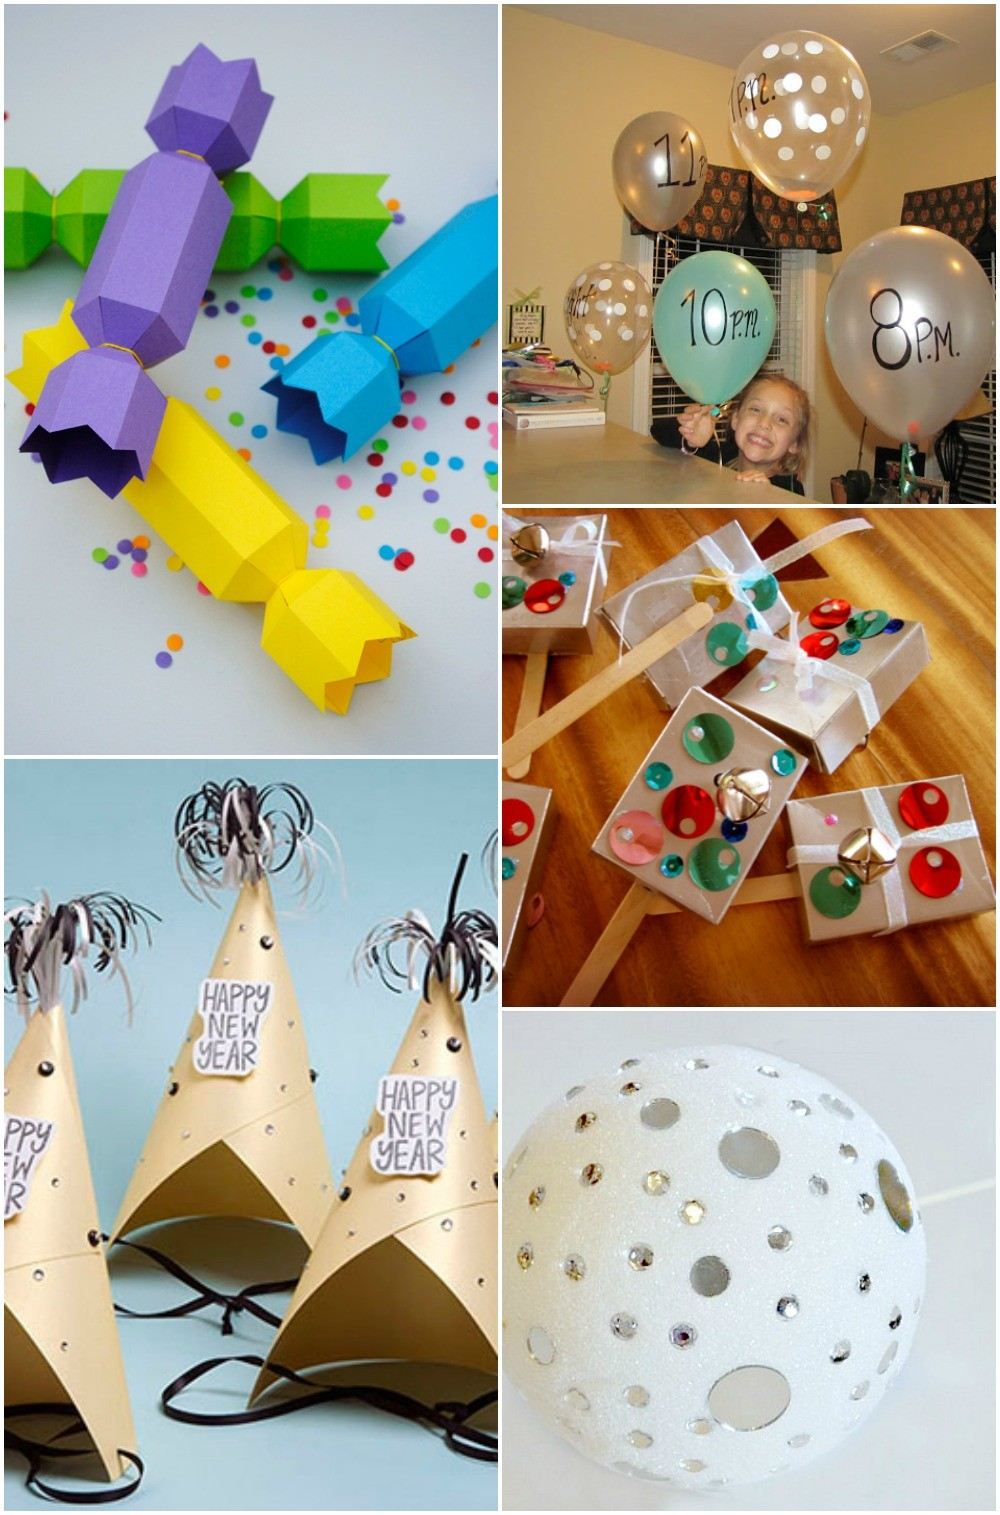 New Craft Ideas For Kids Part - 26: Check Out These Fun New Years Kids Craft Ideas, From Party Hats To Shakers,  Youu0027ll All Have A Blast!